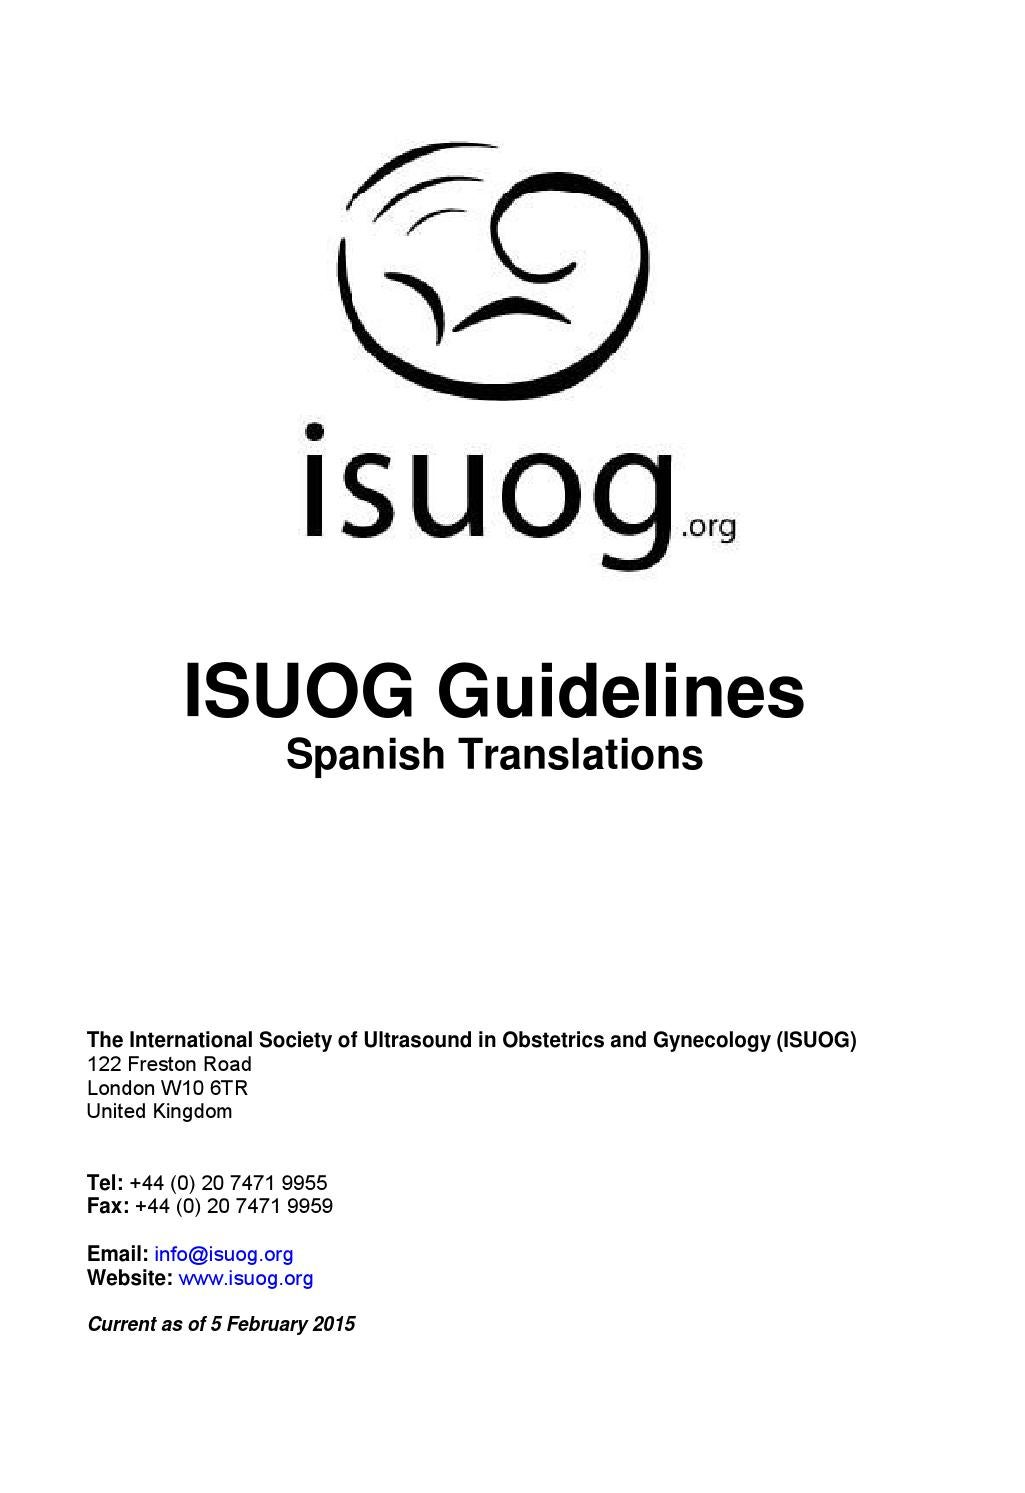 ISUOG Guidelines: Spanish Translations by isuog - issuu